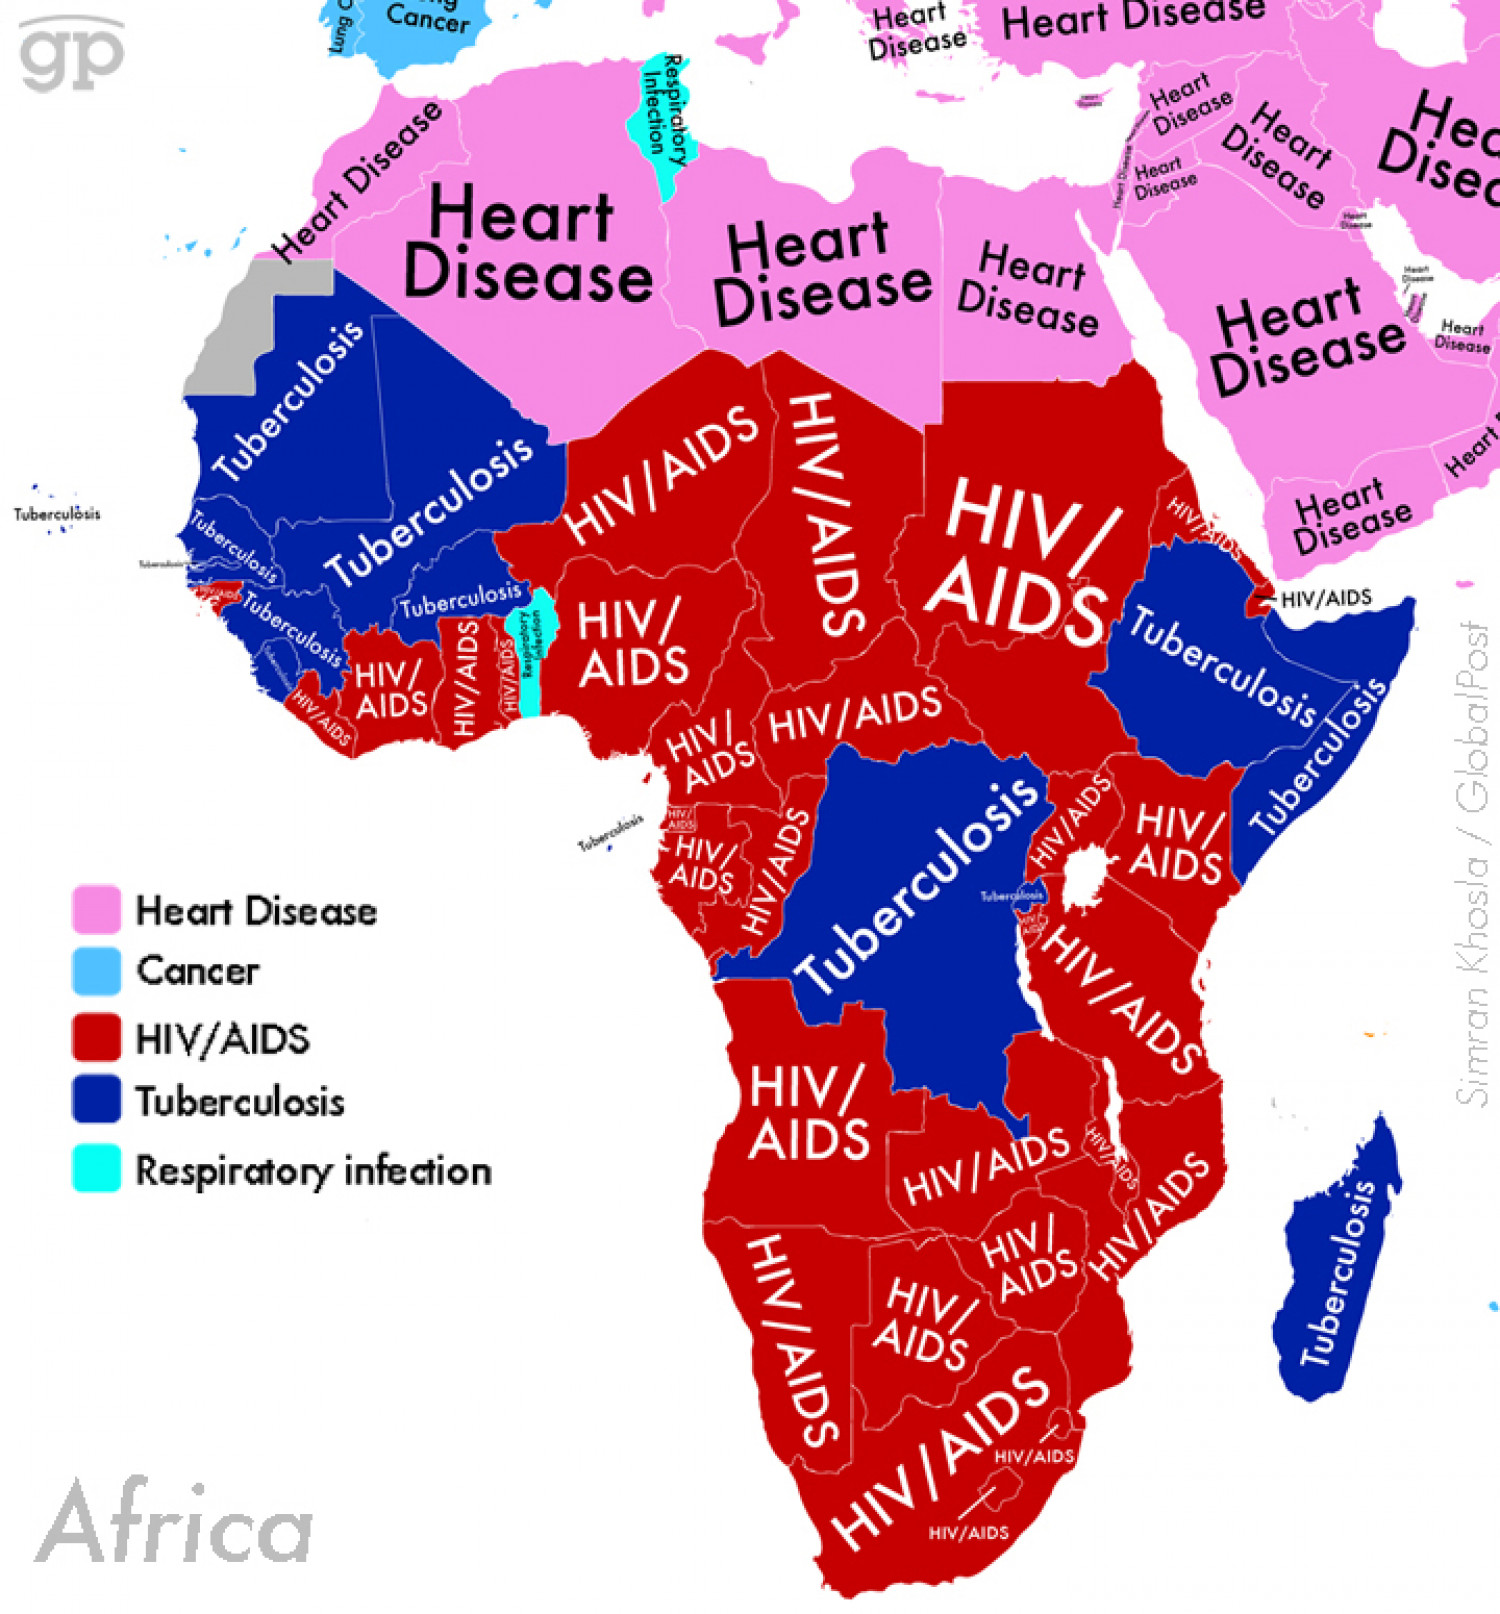 World Diseases (Africa) Infographic